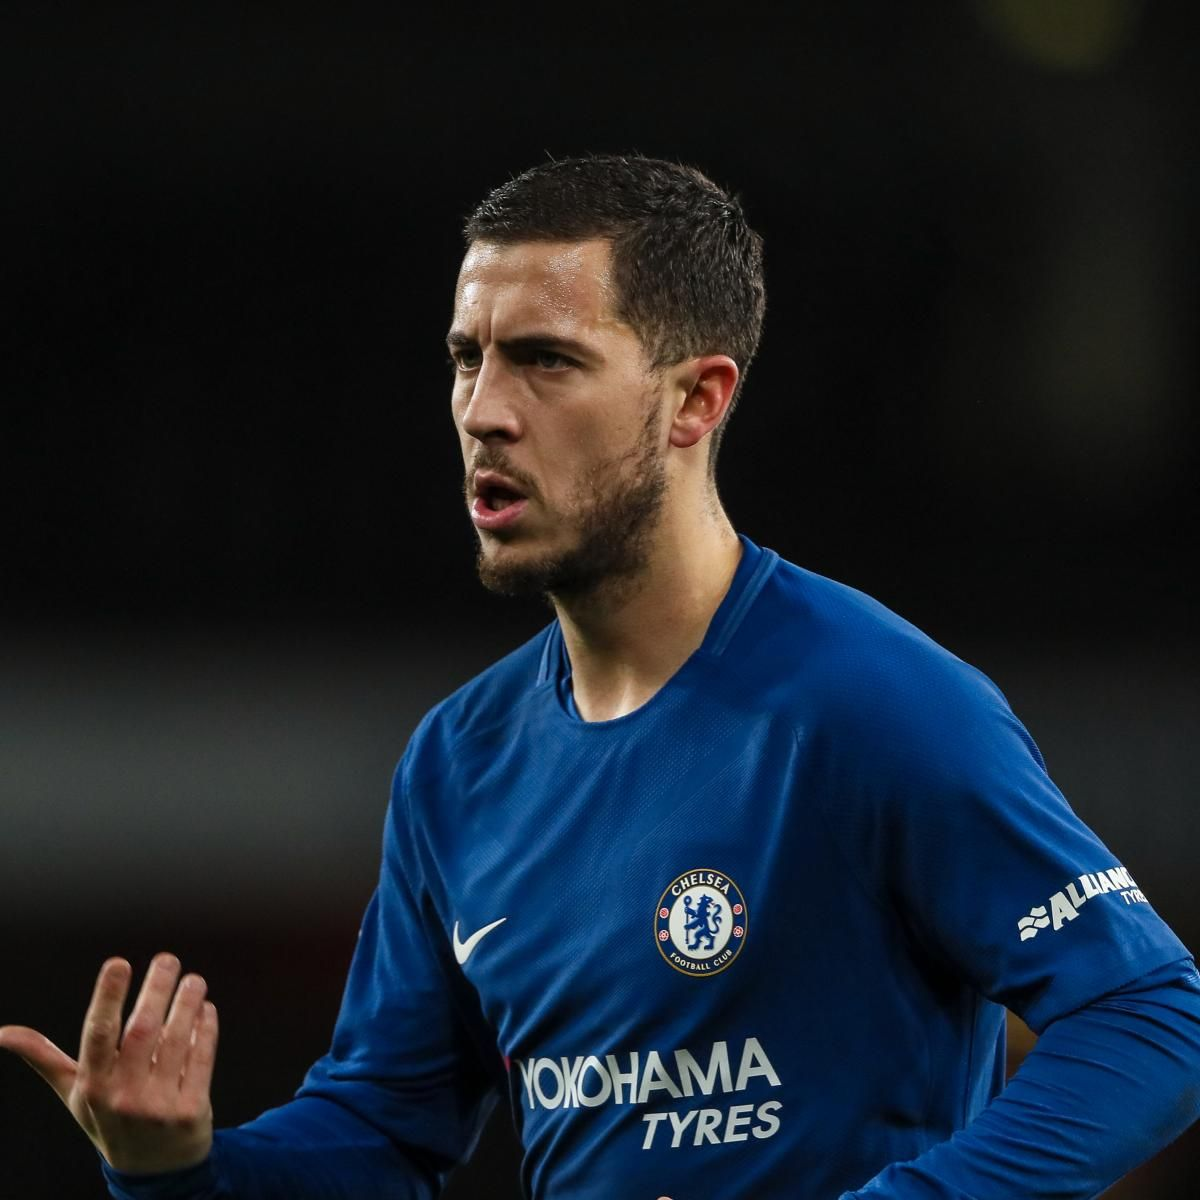 eden hazard dp profile pictures for whatsapp facebook